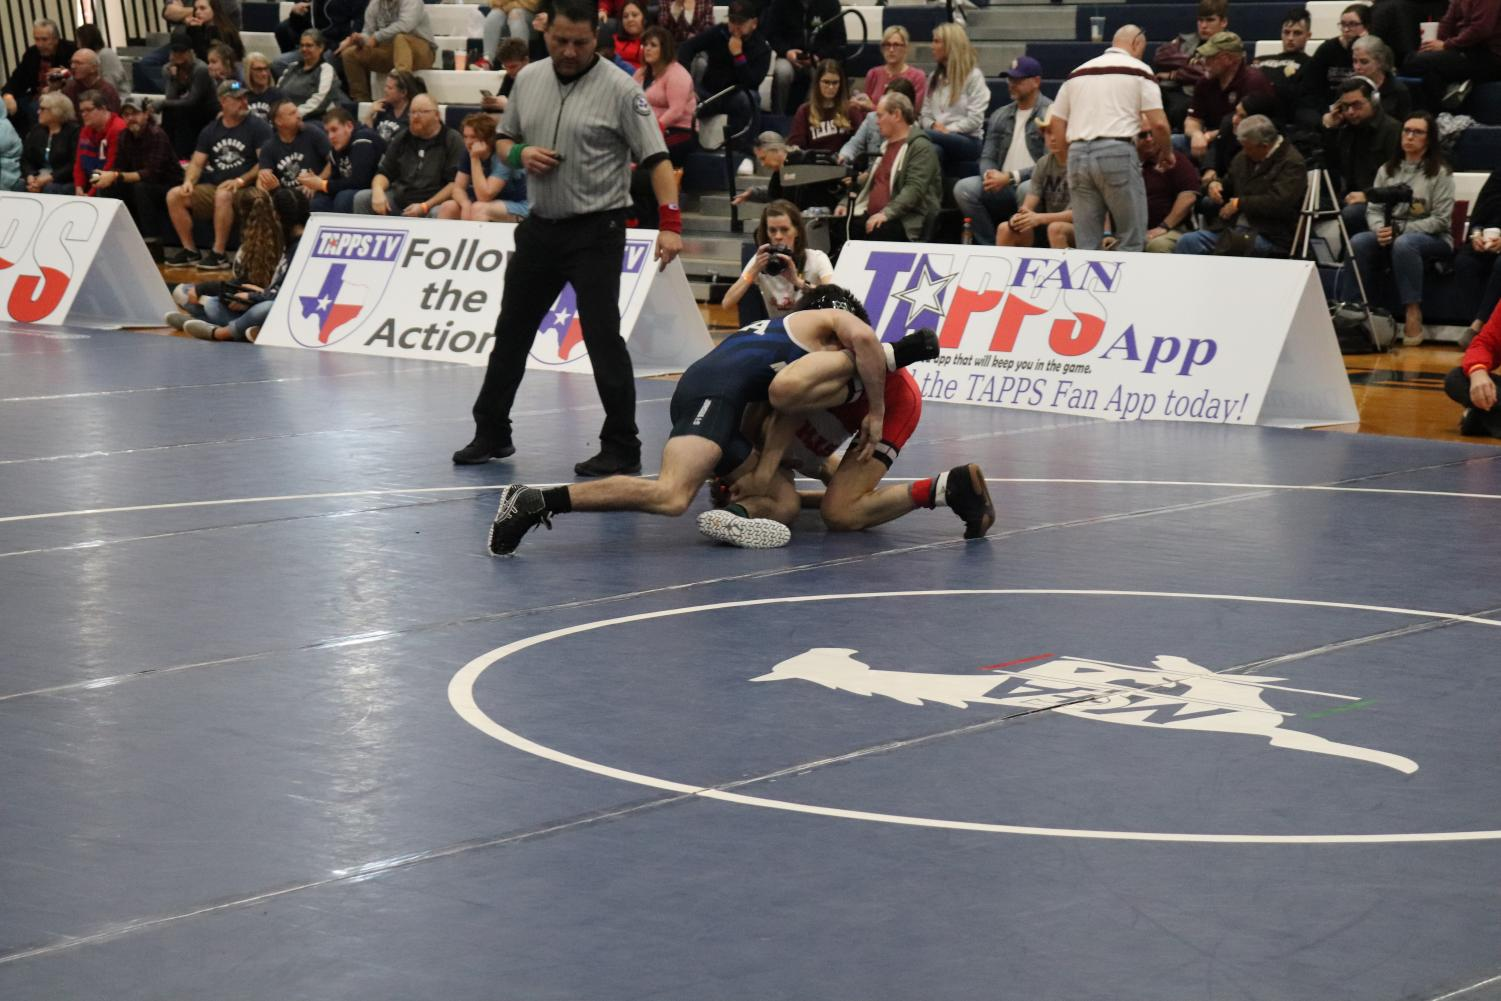 Sophomore+Conrad+Souther+rolling+his+opponent+on+his+back+in+the+attempt+to+pin+for+the+automatic+win.+